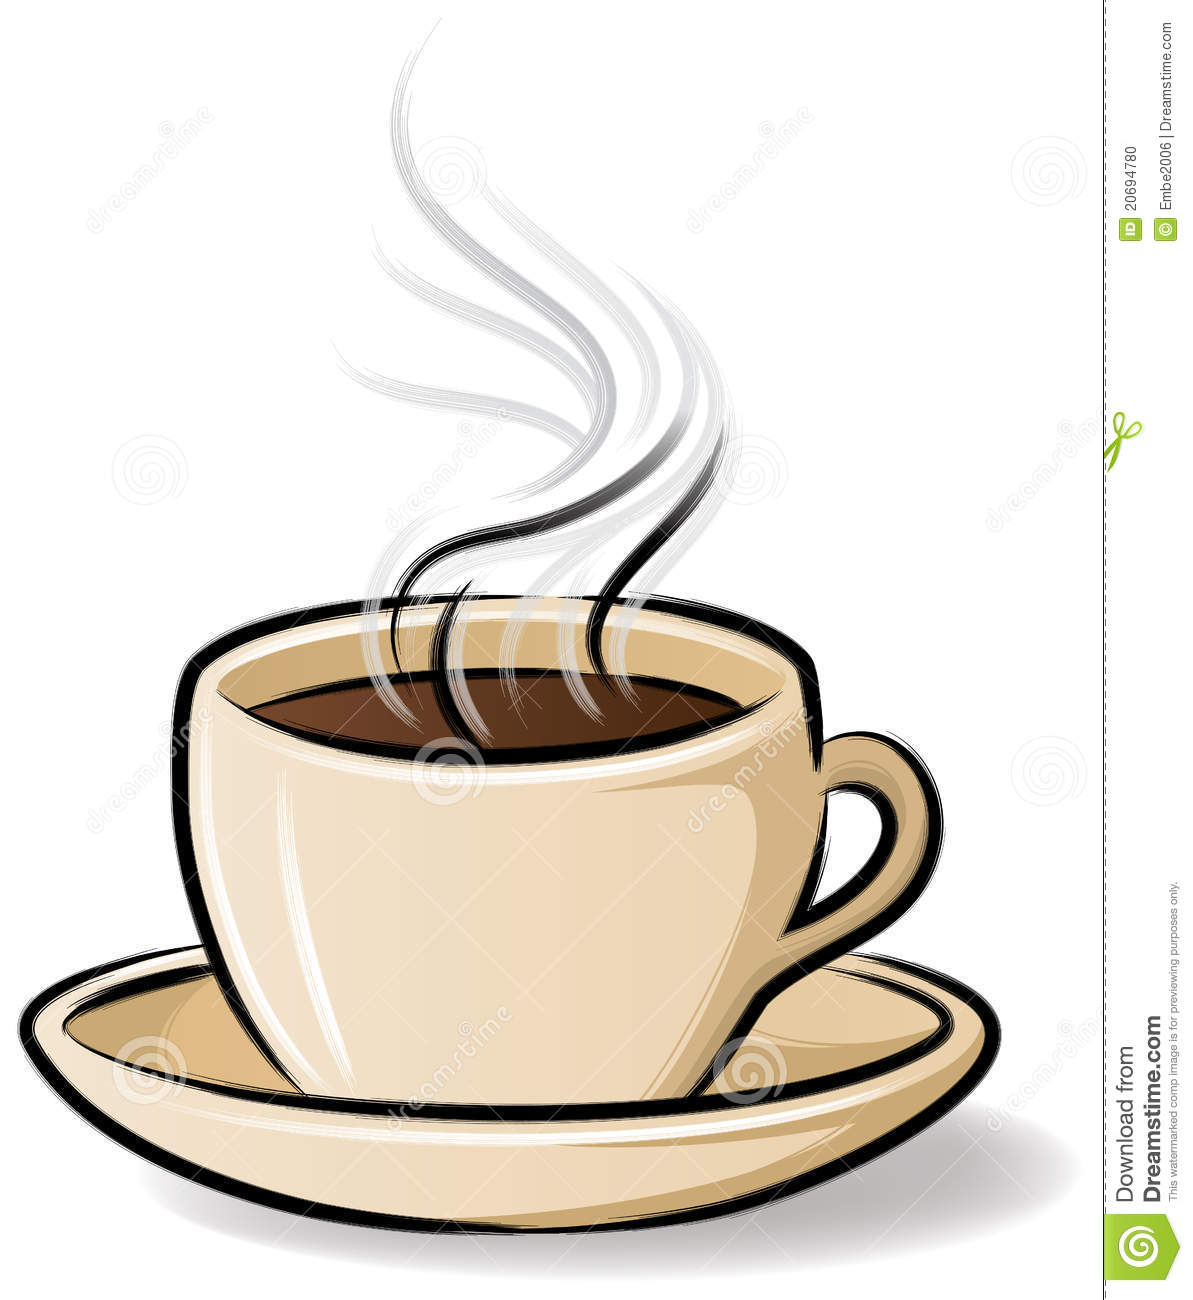 clip art Animated download best . Free clipart coffee cup steaming